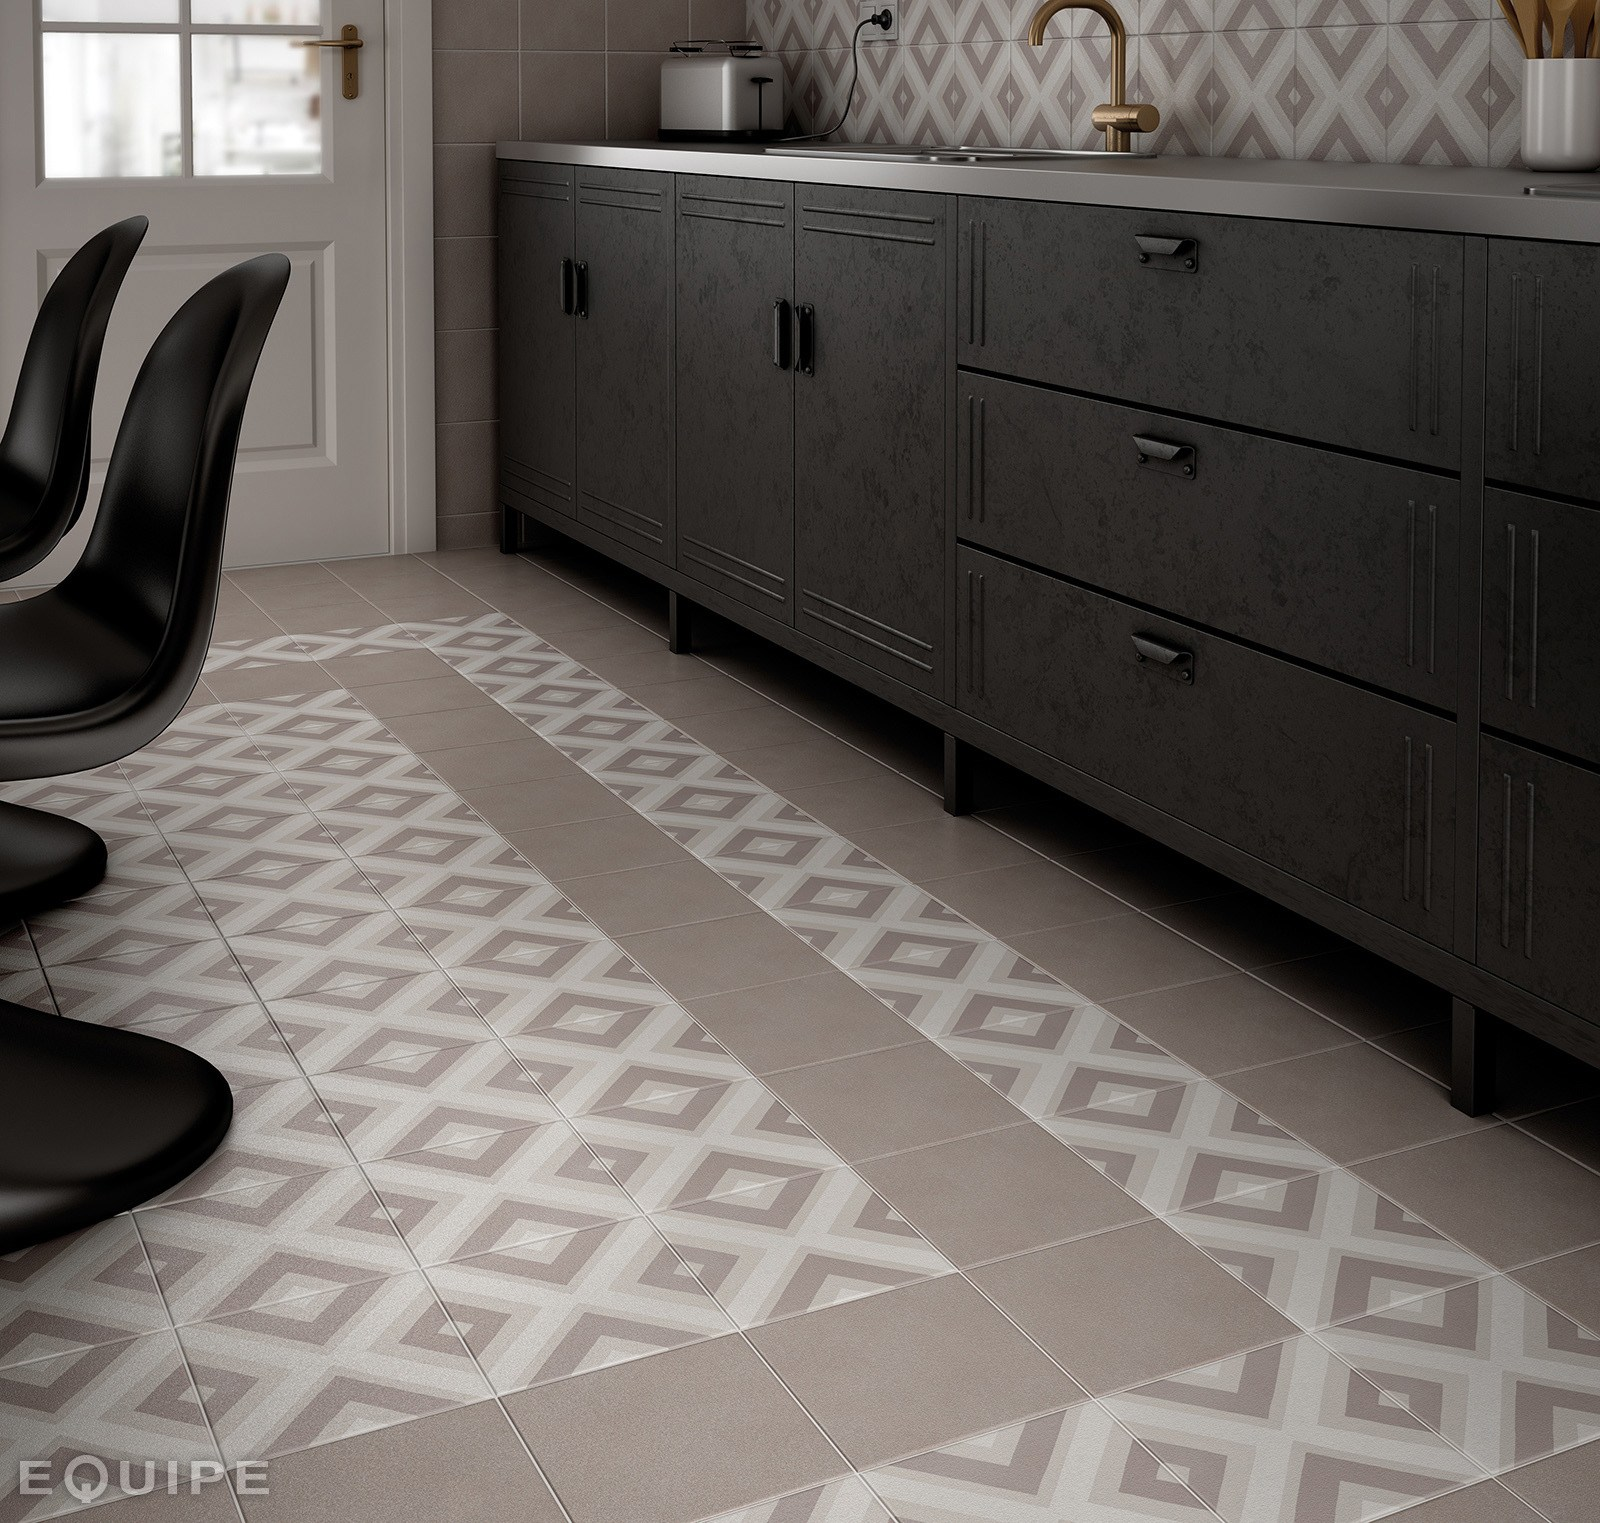 Ceramic wall floor tiles caprice deco by equipe ceramicas for Carrelage 25x40